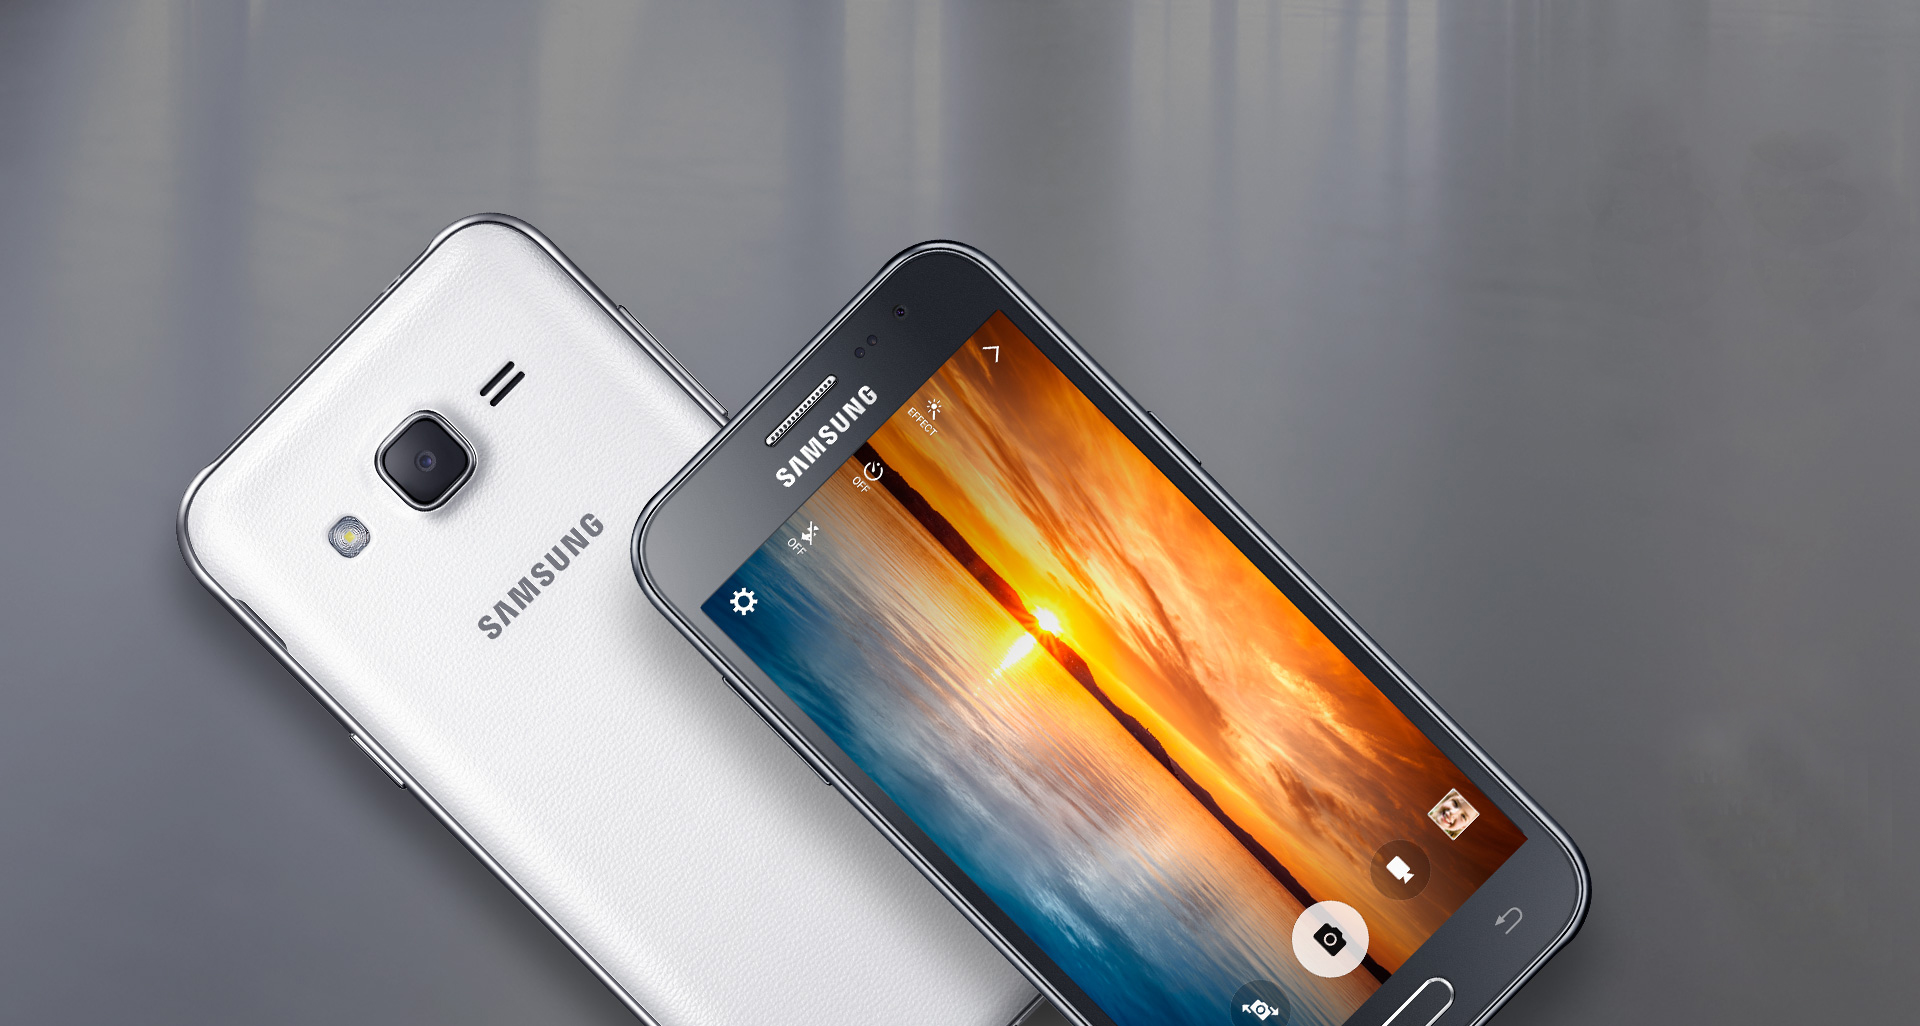 Samsung Galaxy J2 (2016) Specification, Price, Review, Pictures